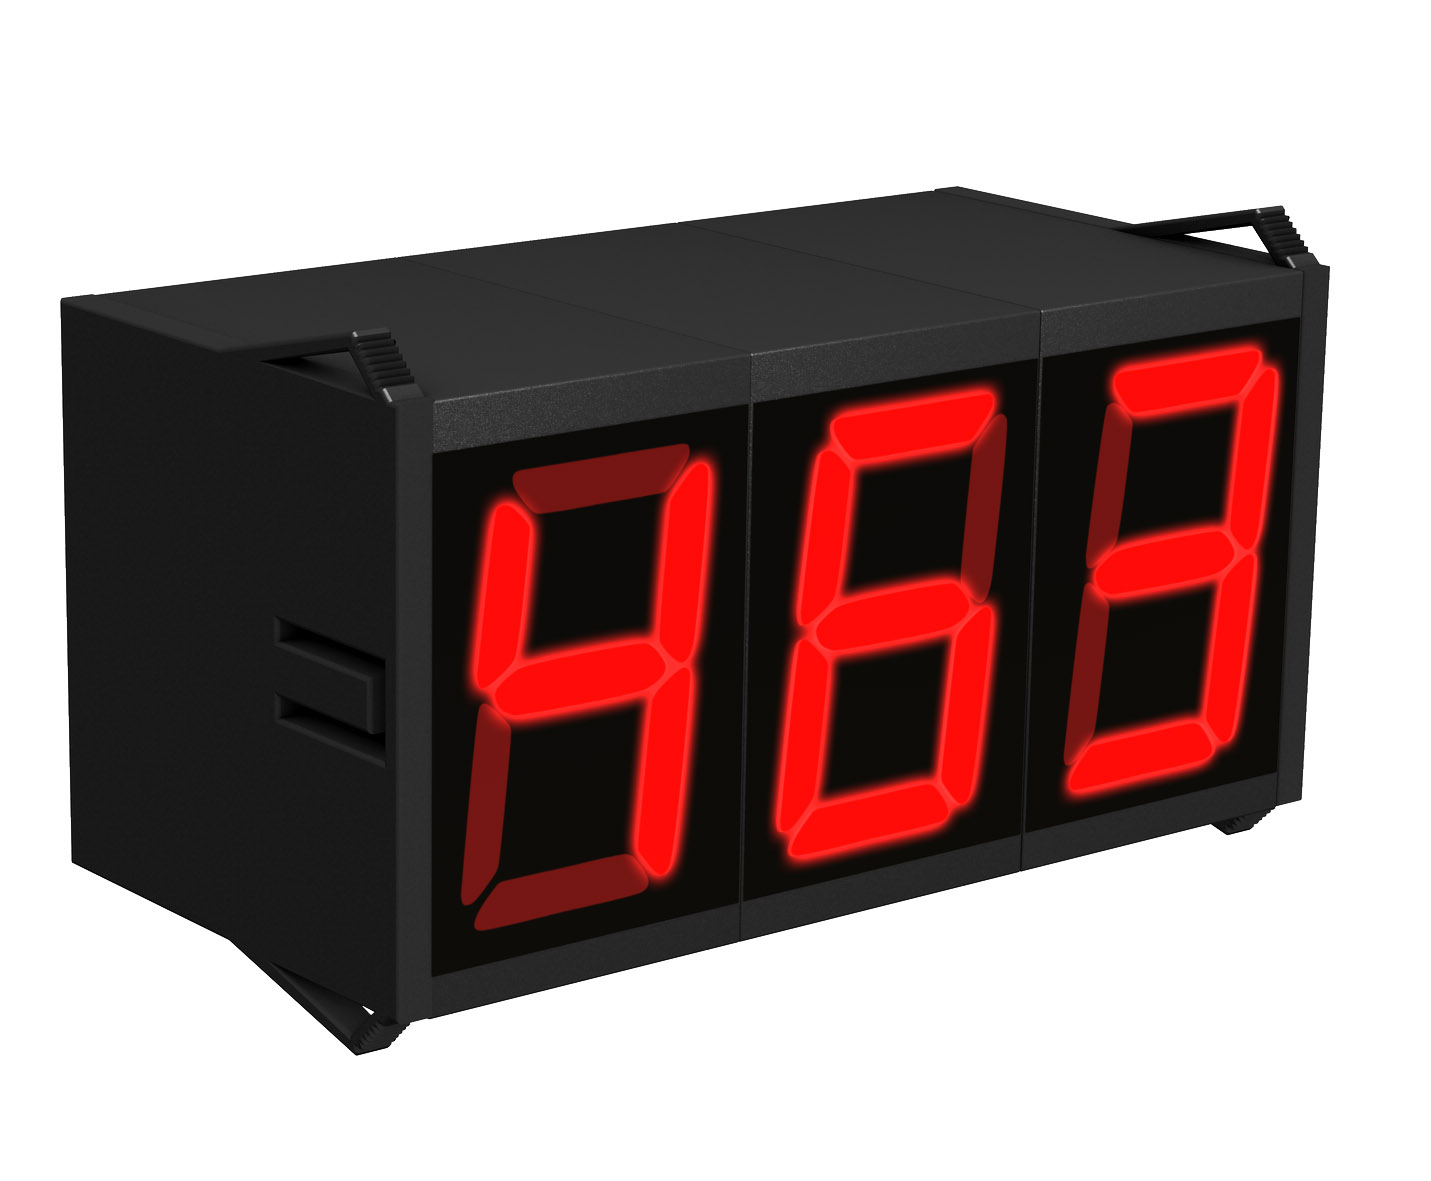 Modular 7-segment small display, character height: 8 to 20 mm, data format: BCD/hexadecimal